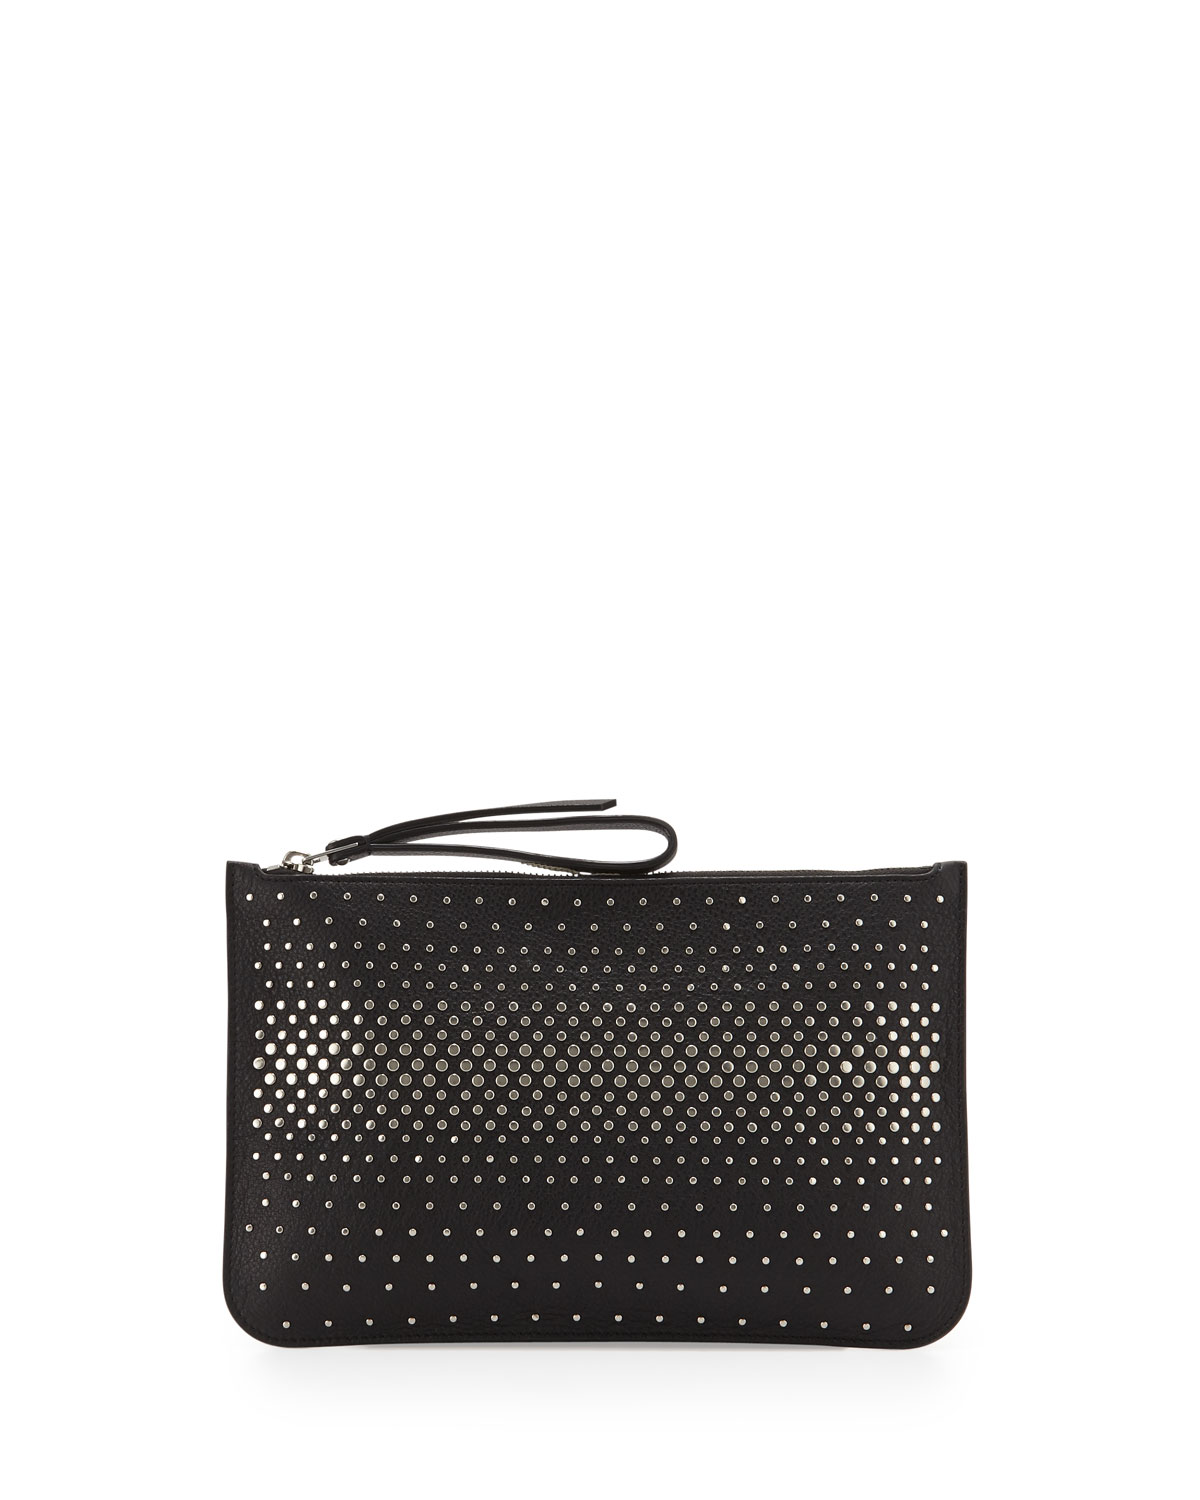 MARC by Marc Jacobs The Roxy Degrade Stud Clutch Bag, Black